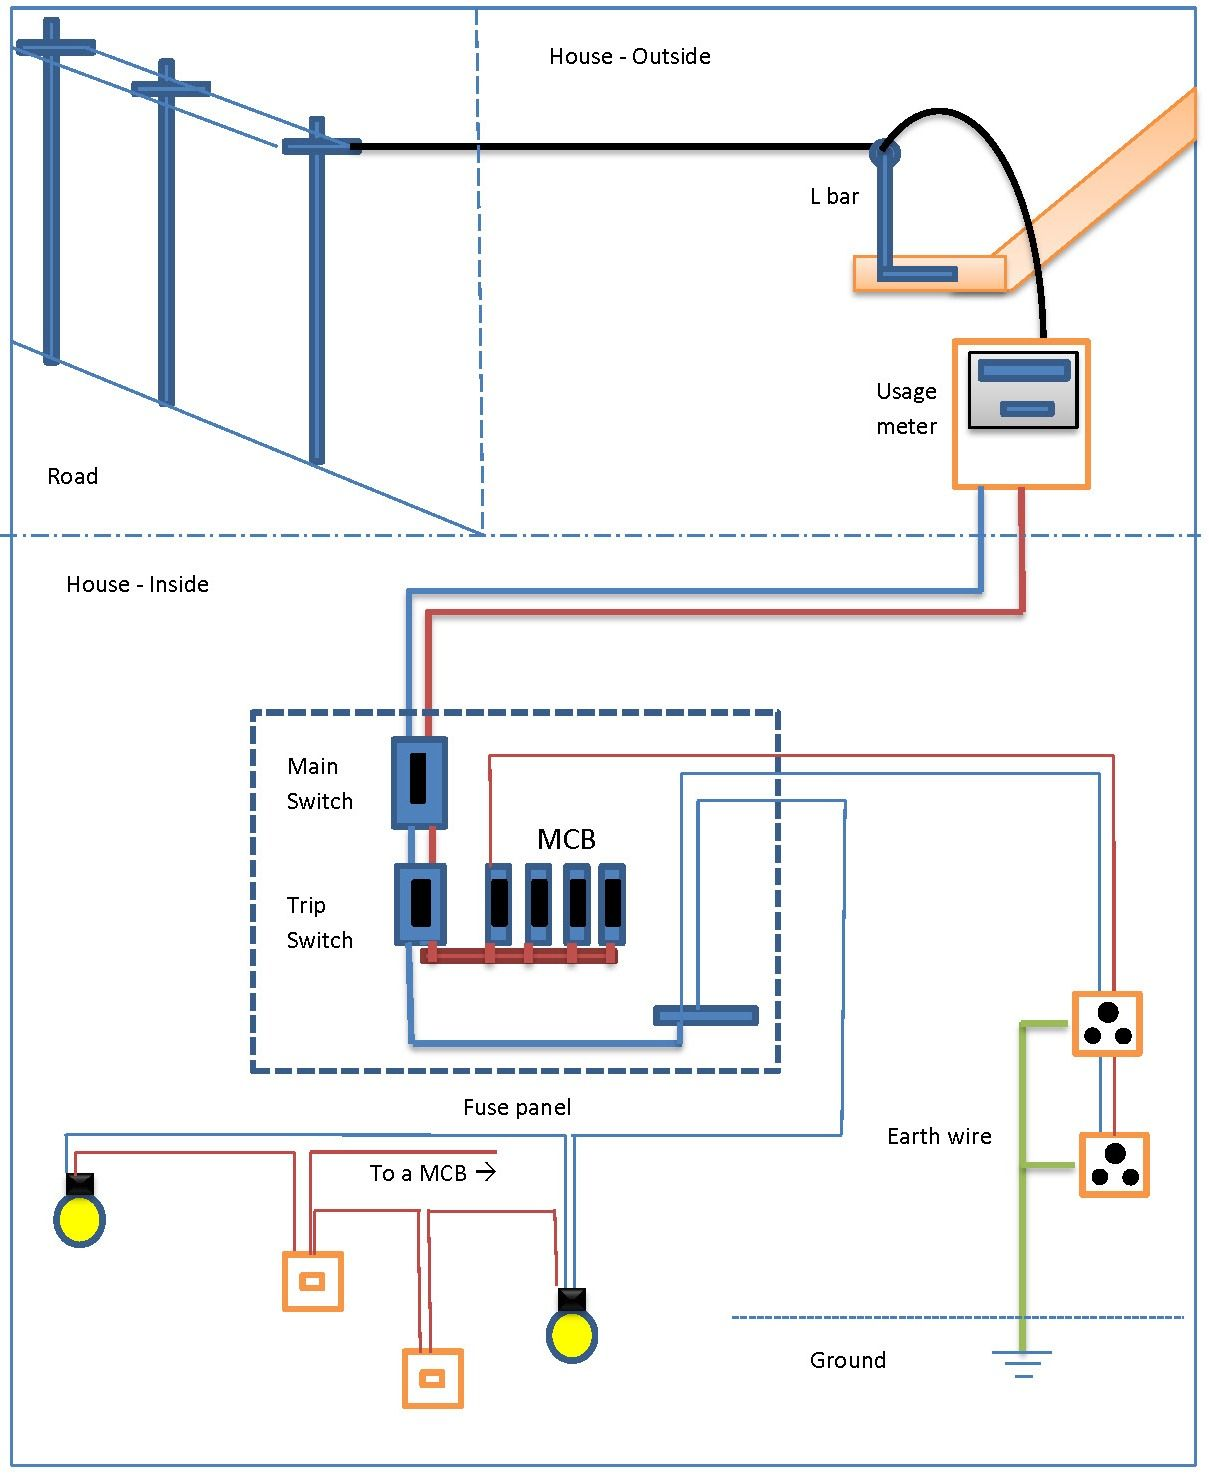 Domestic Lighting Wiring Diagram 24 Hour Timer Circuit Senasum39s Blog House Sri Lanka Uno